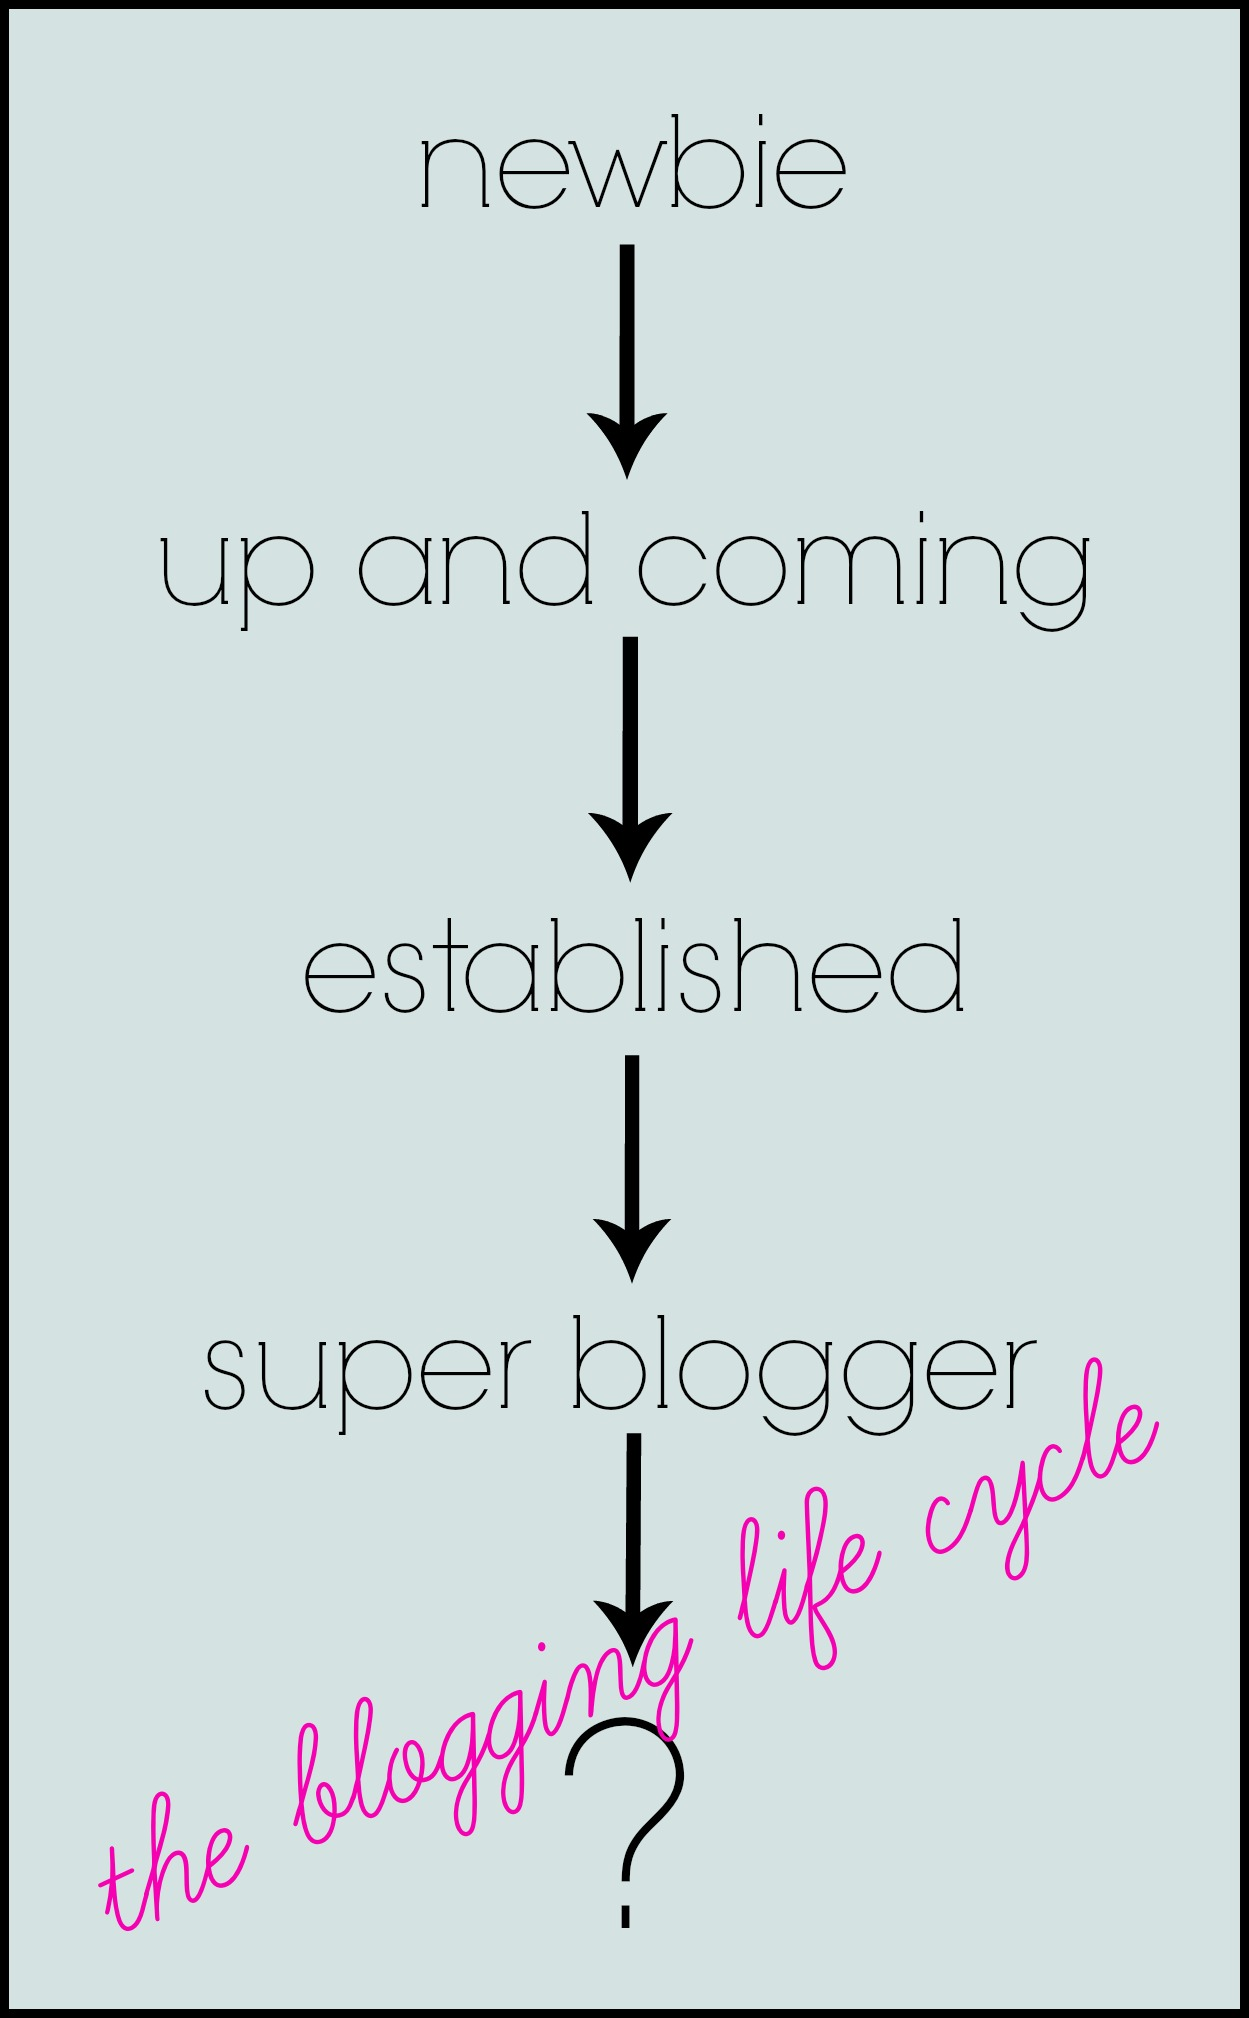 Are you a newbie or a superblogger